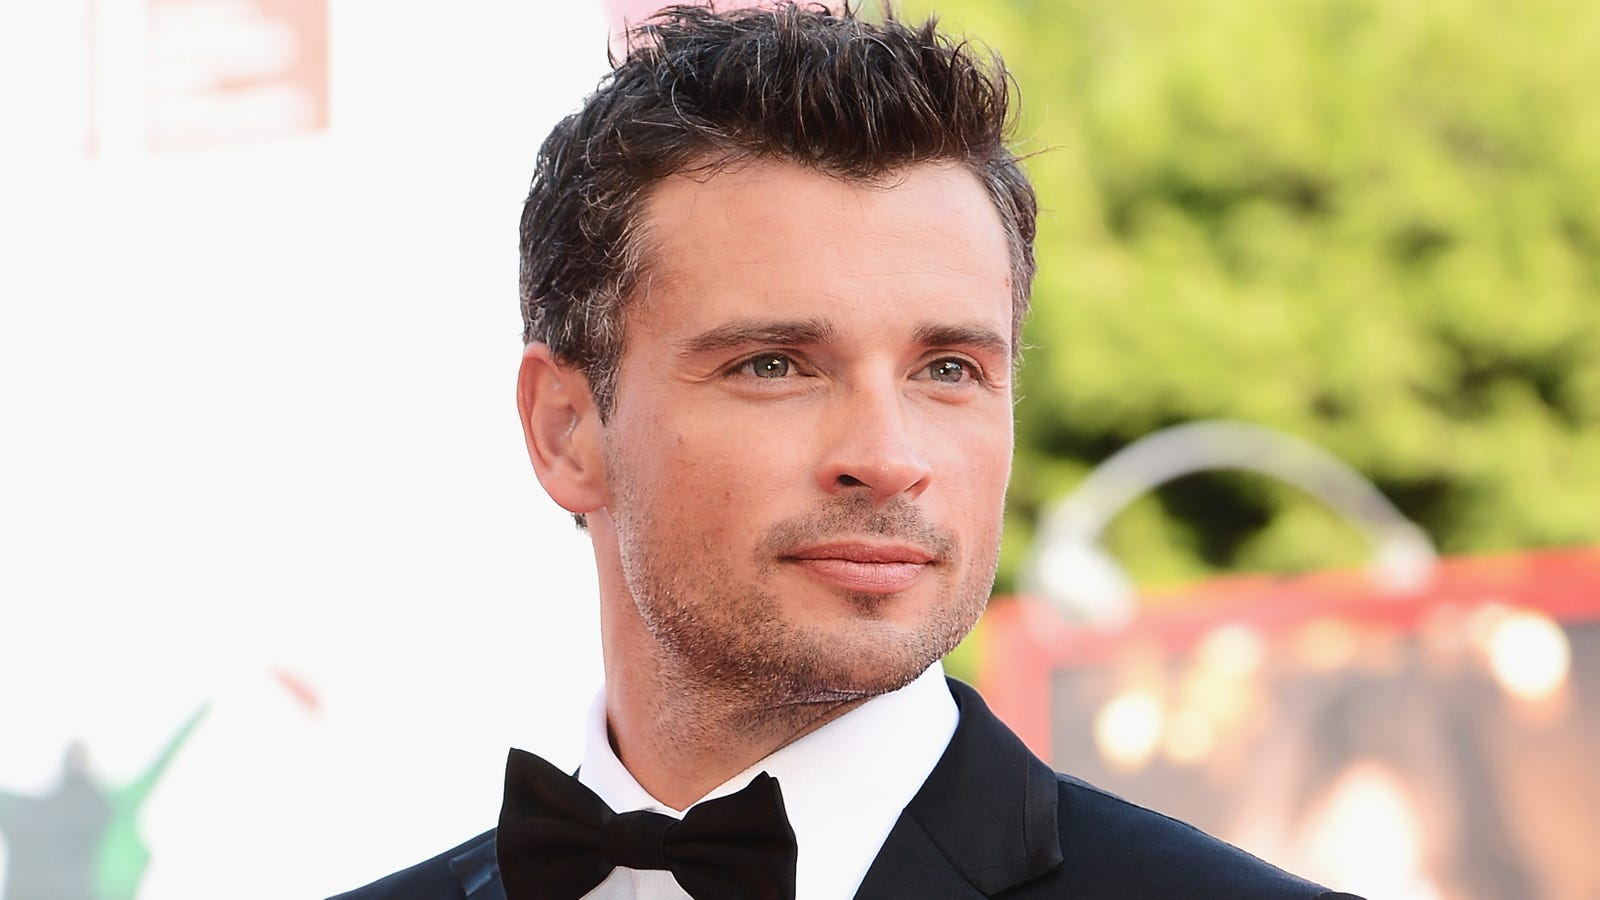 Tom Welling to appear as Smallville's Clark Kent in Crisis On Infinite Earths